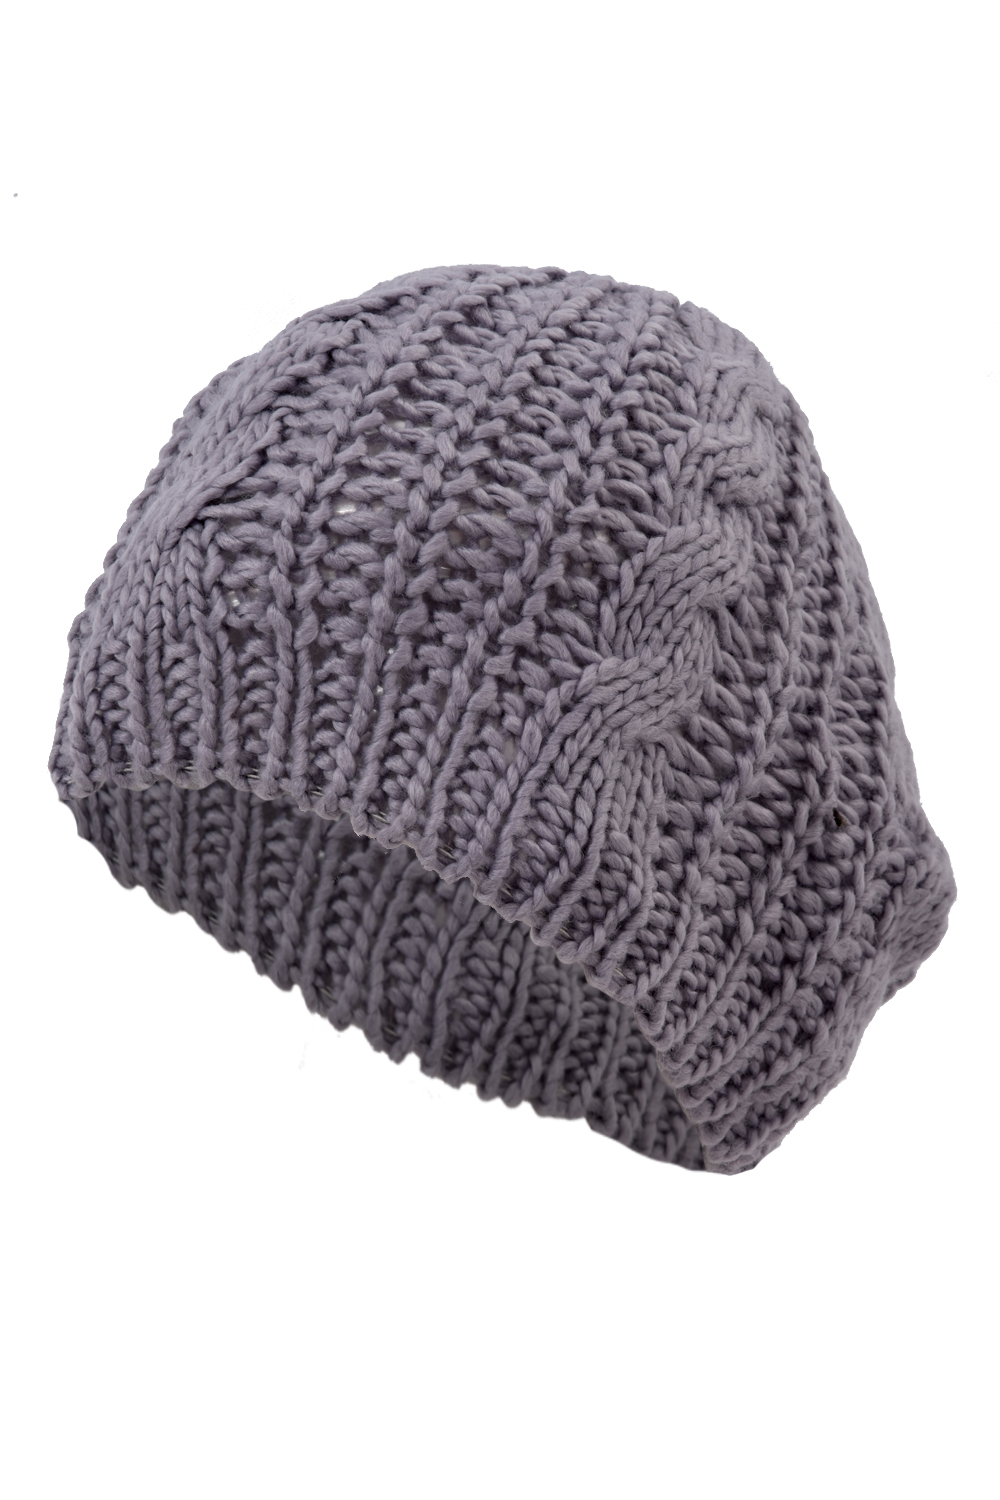 NEW  Braided Baggy Beanie Crochet Knitting Warm Winter Wool Hat Ski Cap for Women 2017 new wool grey beanie hat for women warm simple style bad hair day knitting winter wooly hats online ds20170123 x24